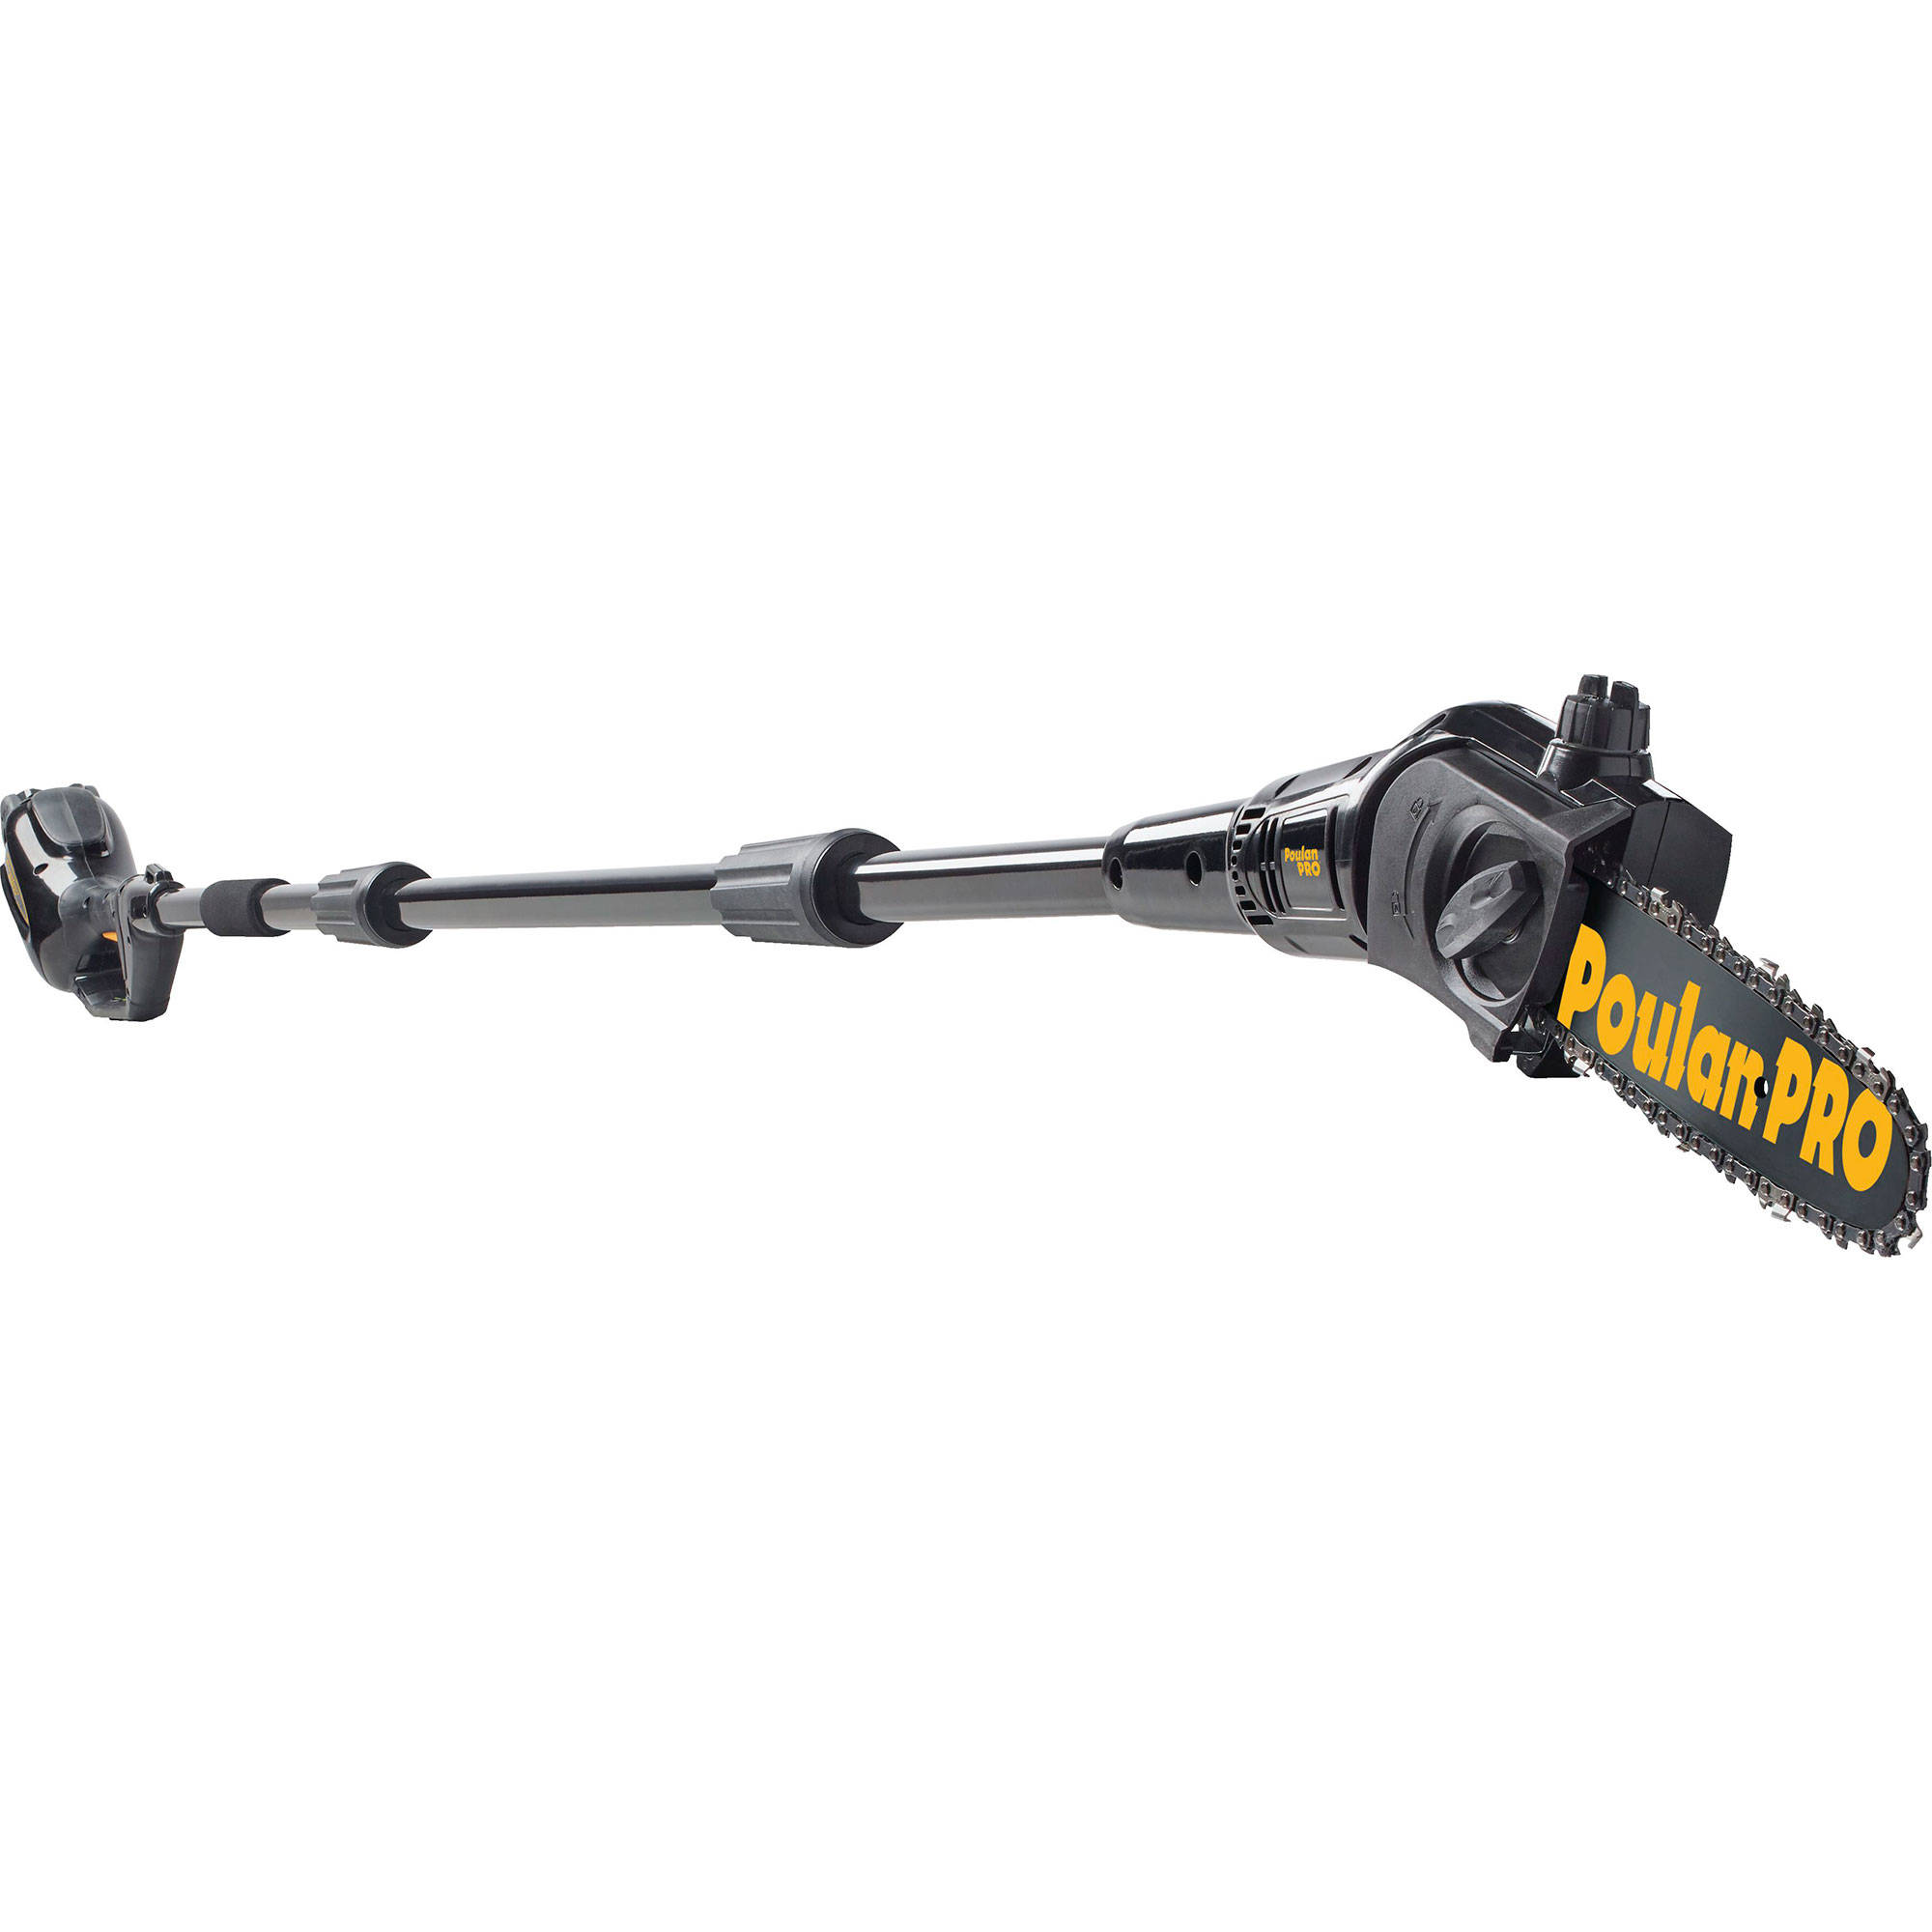 Poulan Pro 40-Volt Lithium-ion Rechargeable Battery Pole Saw by Husqvarna